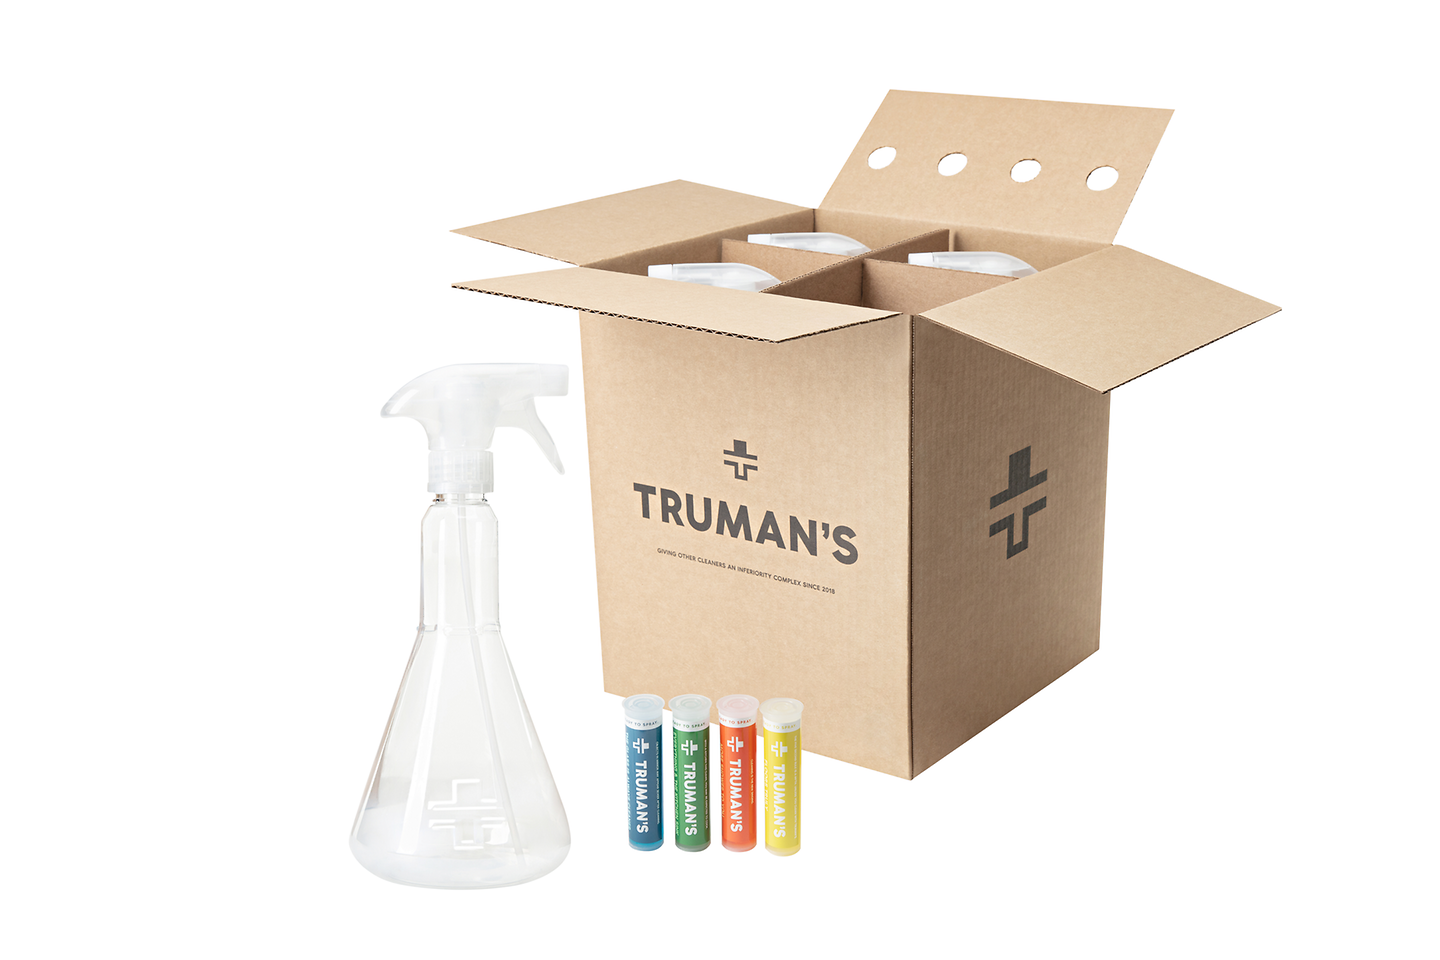 Truman's offers cleaners that utilize refillable bottles and concentrate cartridges to reduce plastic.